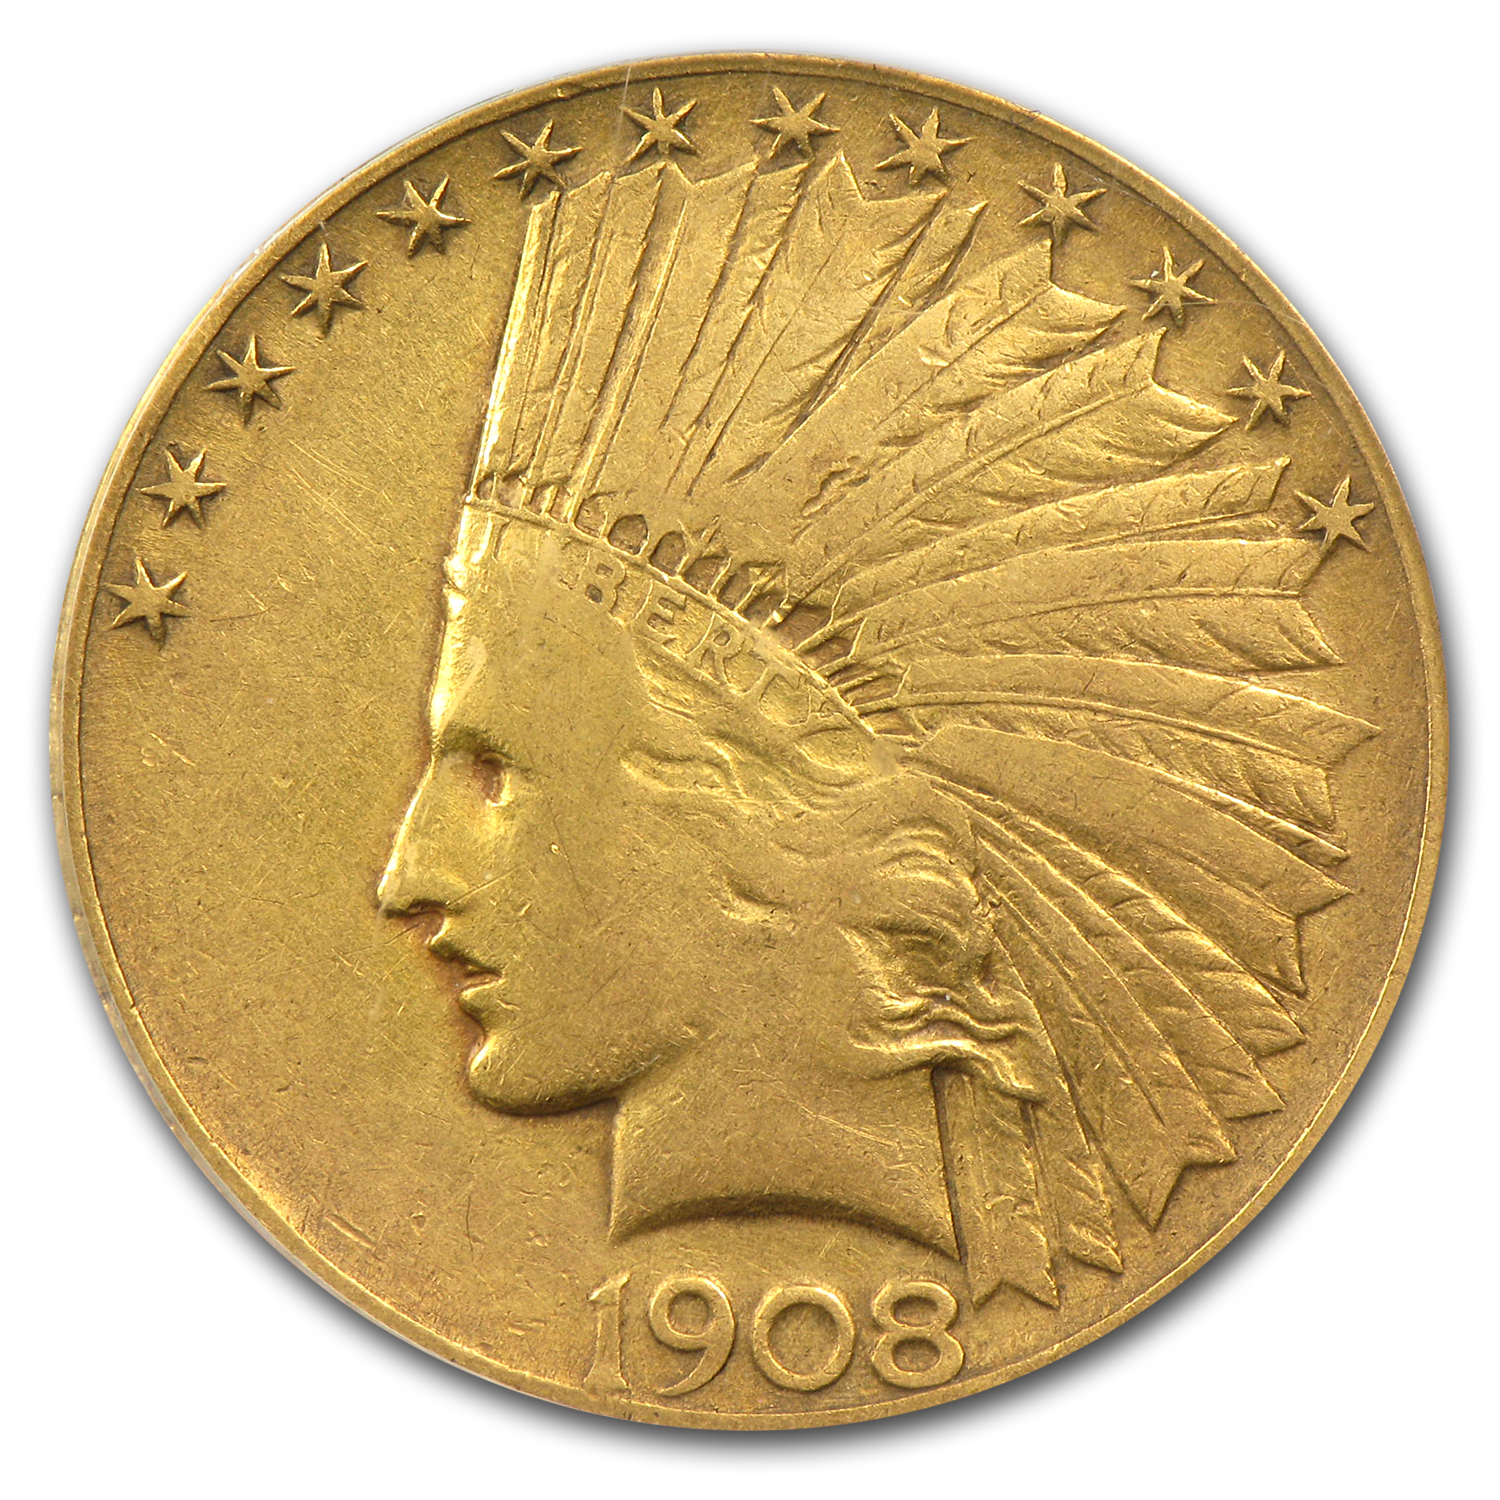 1908 $10 Indian Gold Eagle - With Motto - VF-20 PCGS